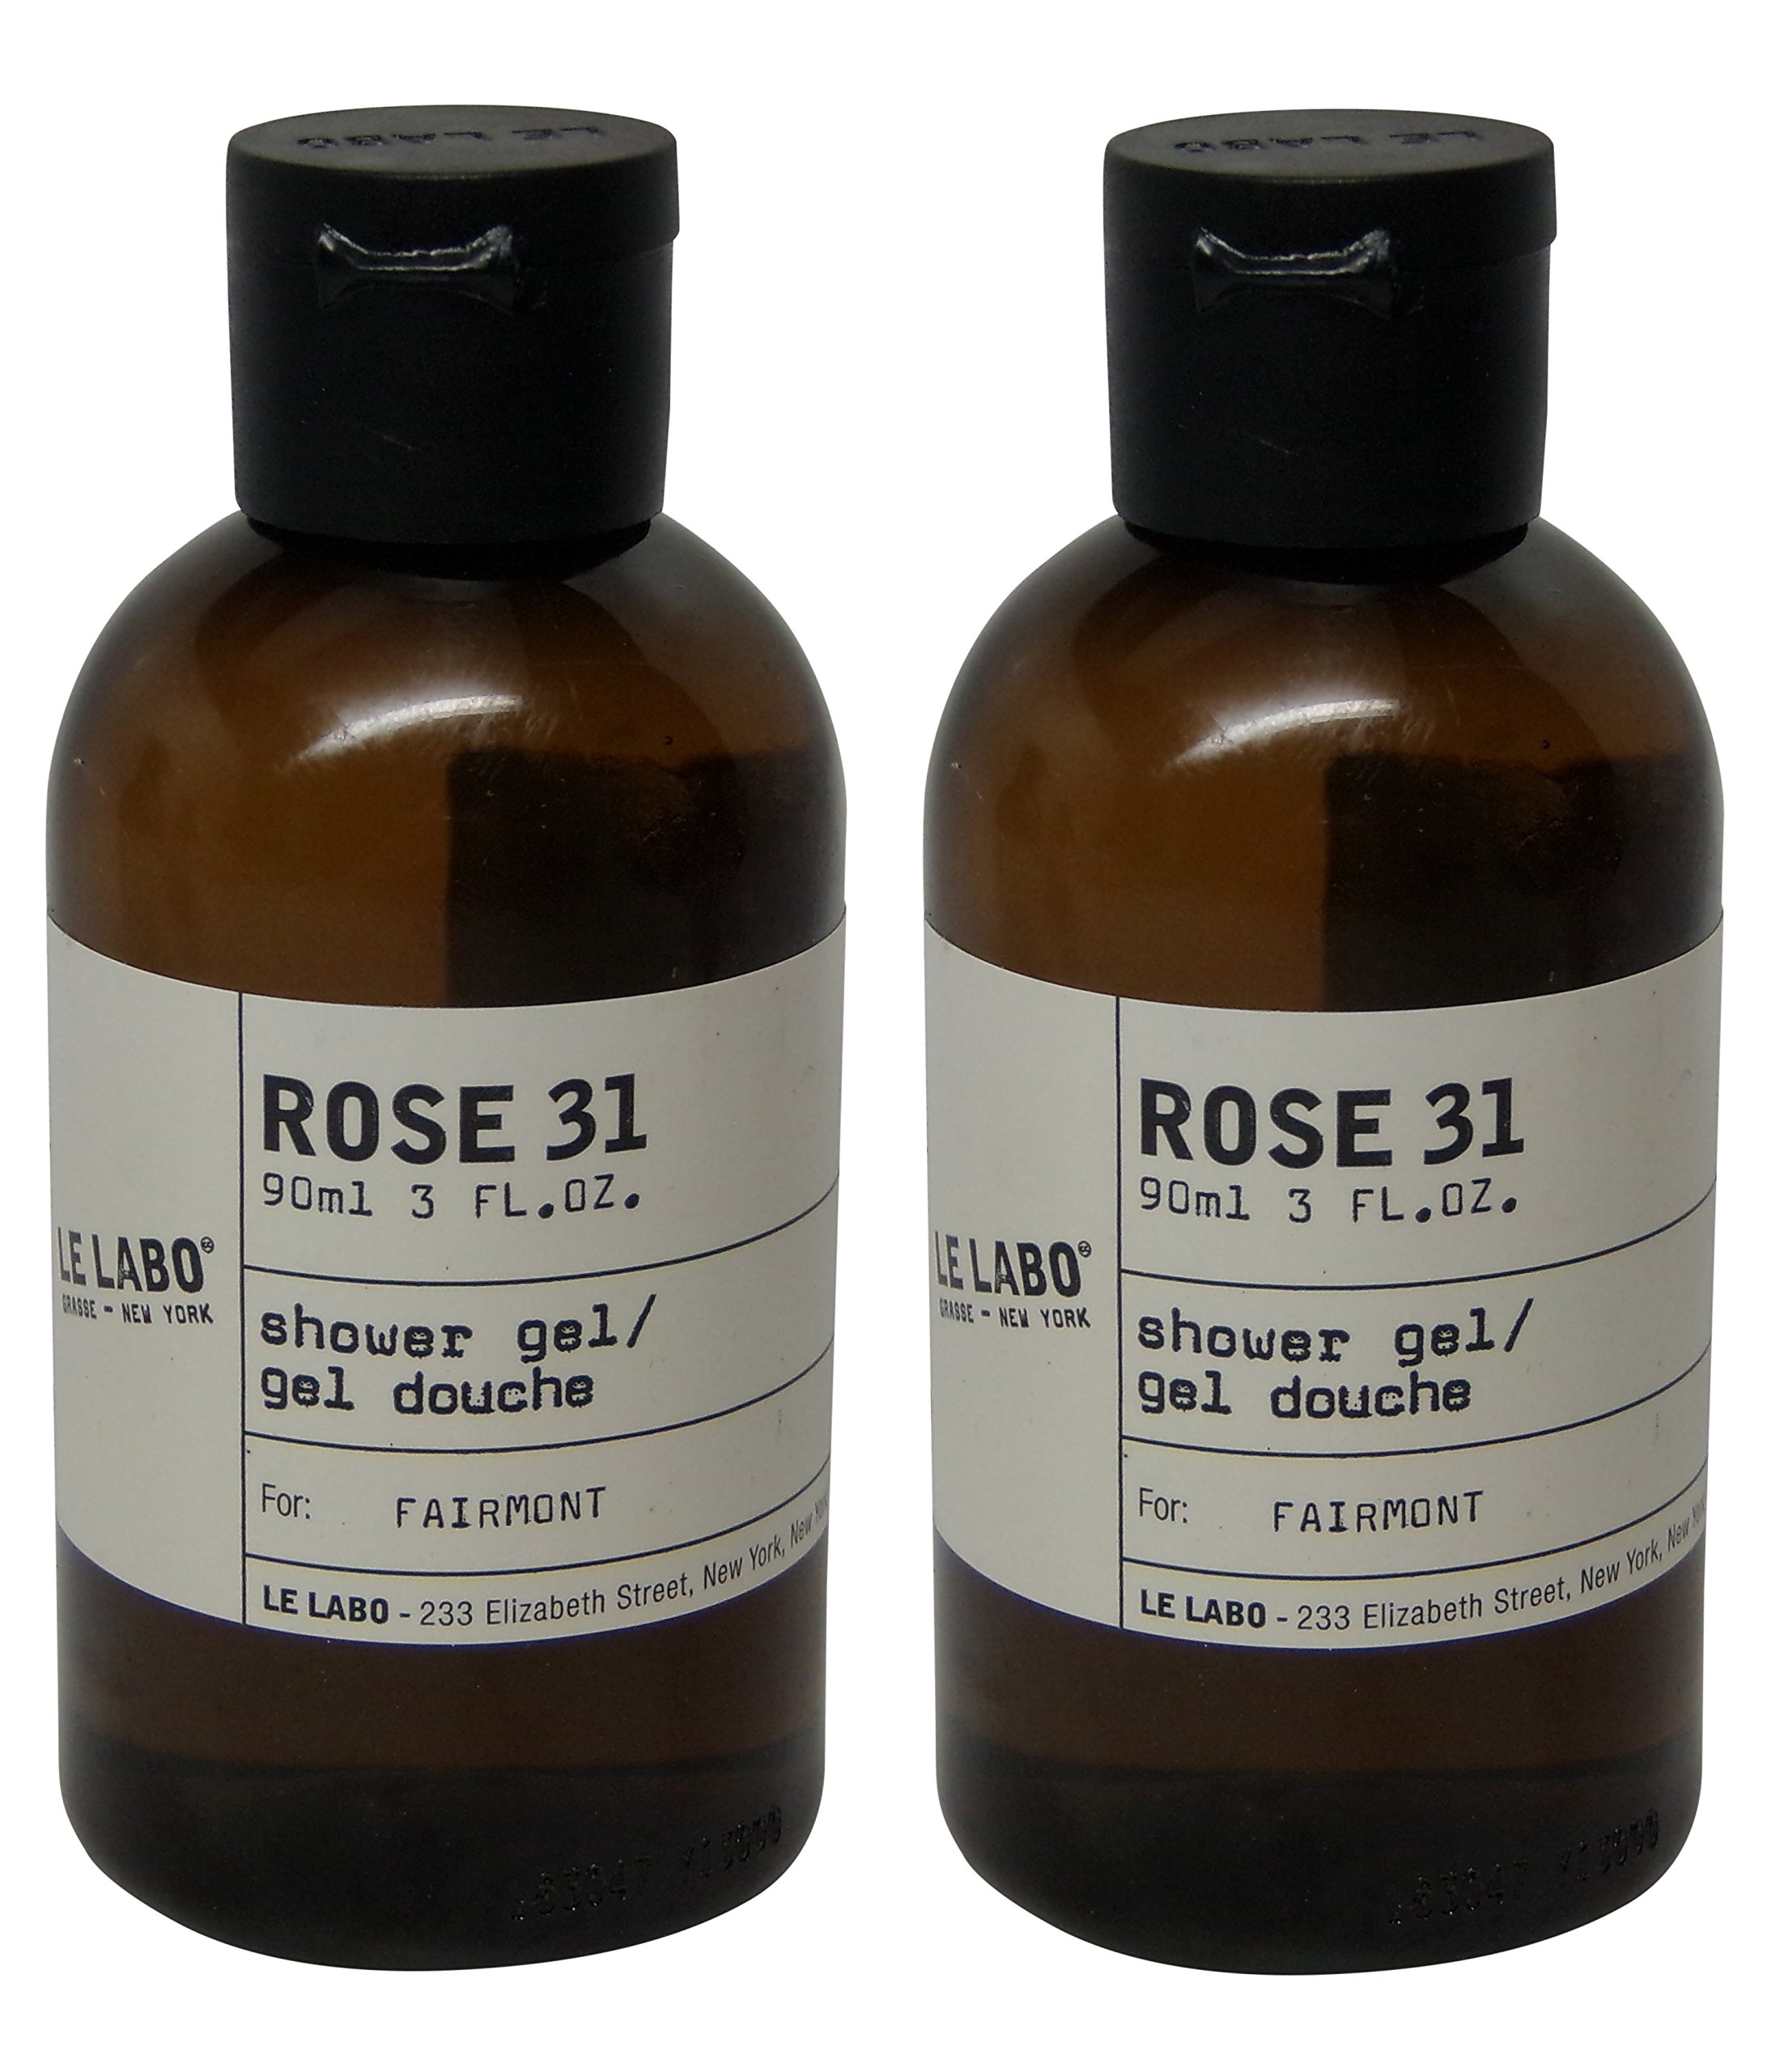 Le labo rose 31 shampoo conditioner lot of - Rose 31 shower gel ...